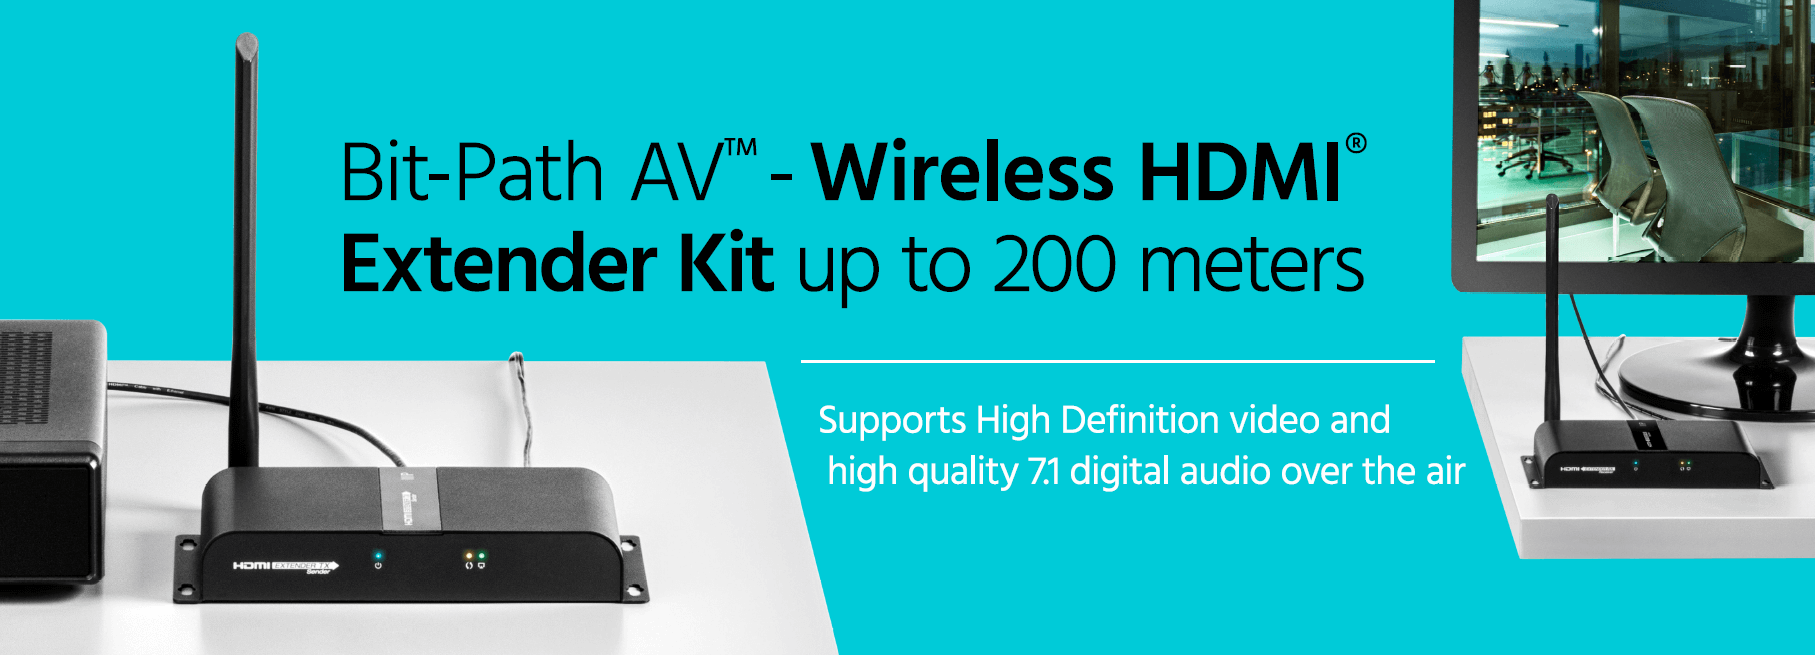 Bit-Path AV Wireless HDMI Extender Kit